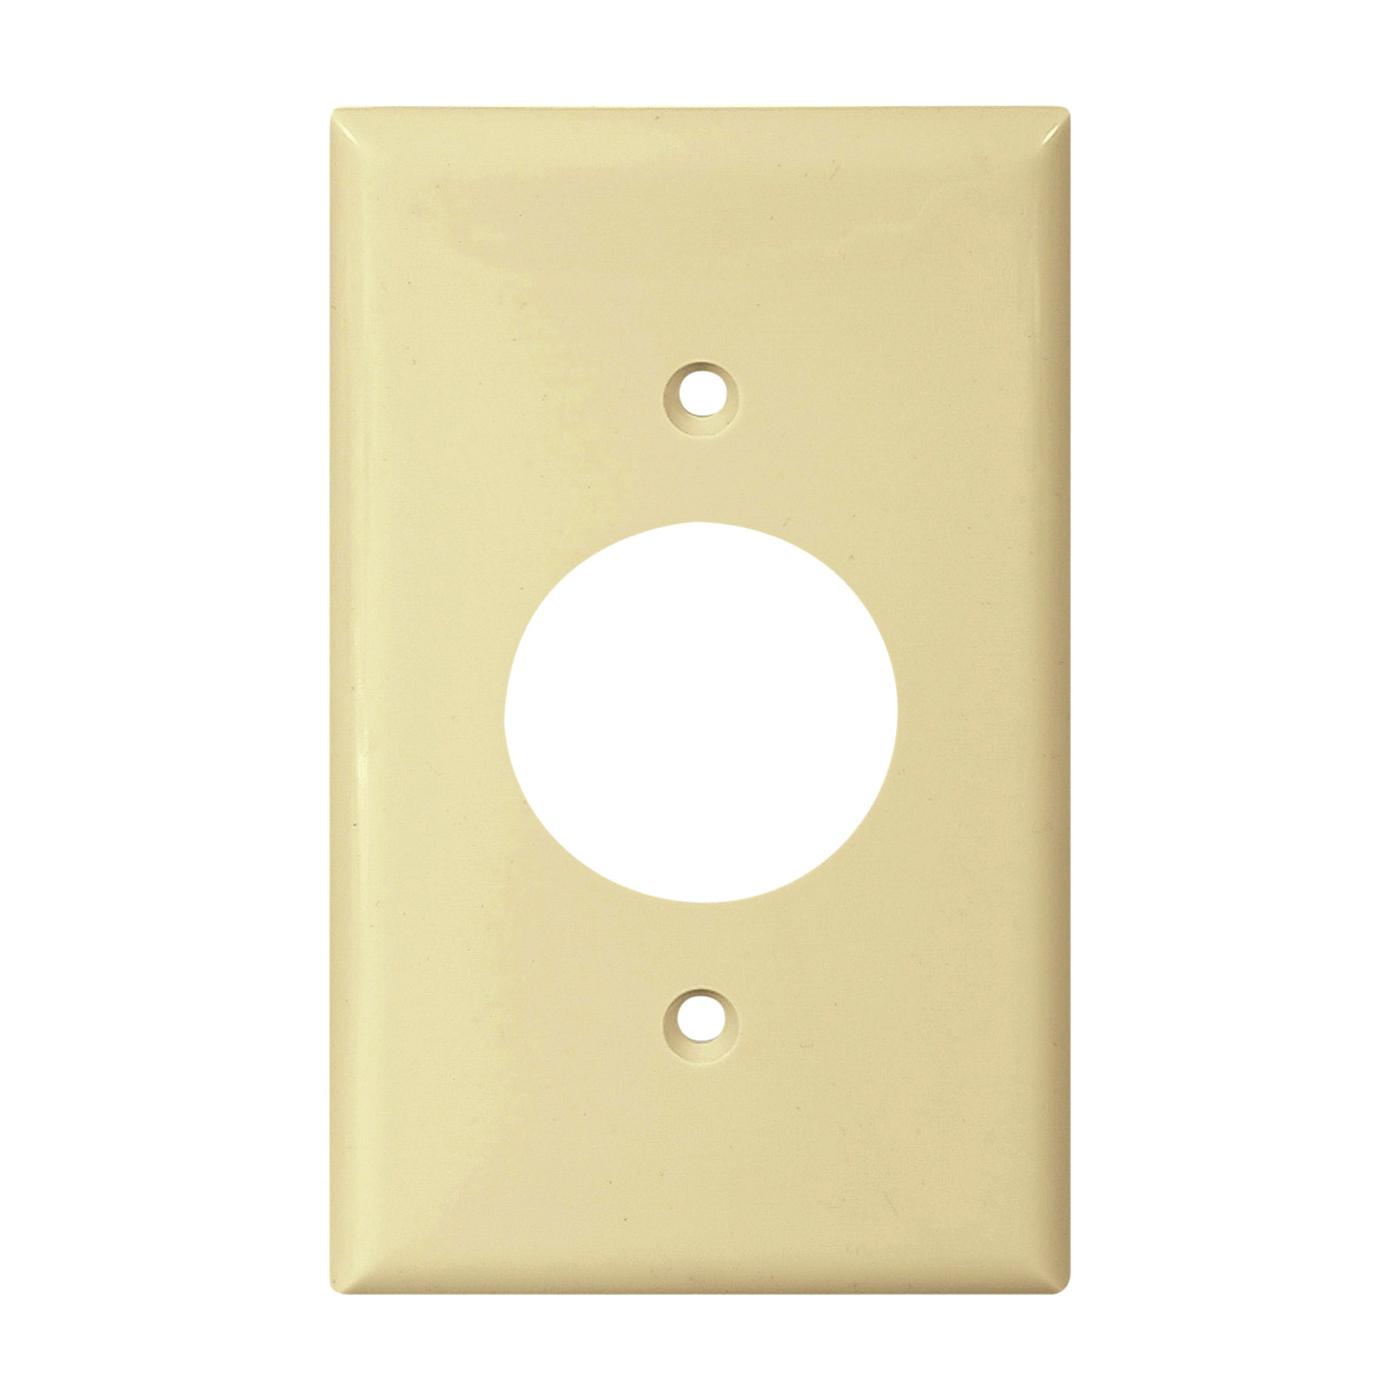 Picture of Eaton Wiring Devices 5131V-BOX Single Receptacle Wallplate, 4-1/2 in L, 2-3/4 in W, 1-Gang, Nylon, Ivory